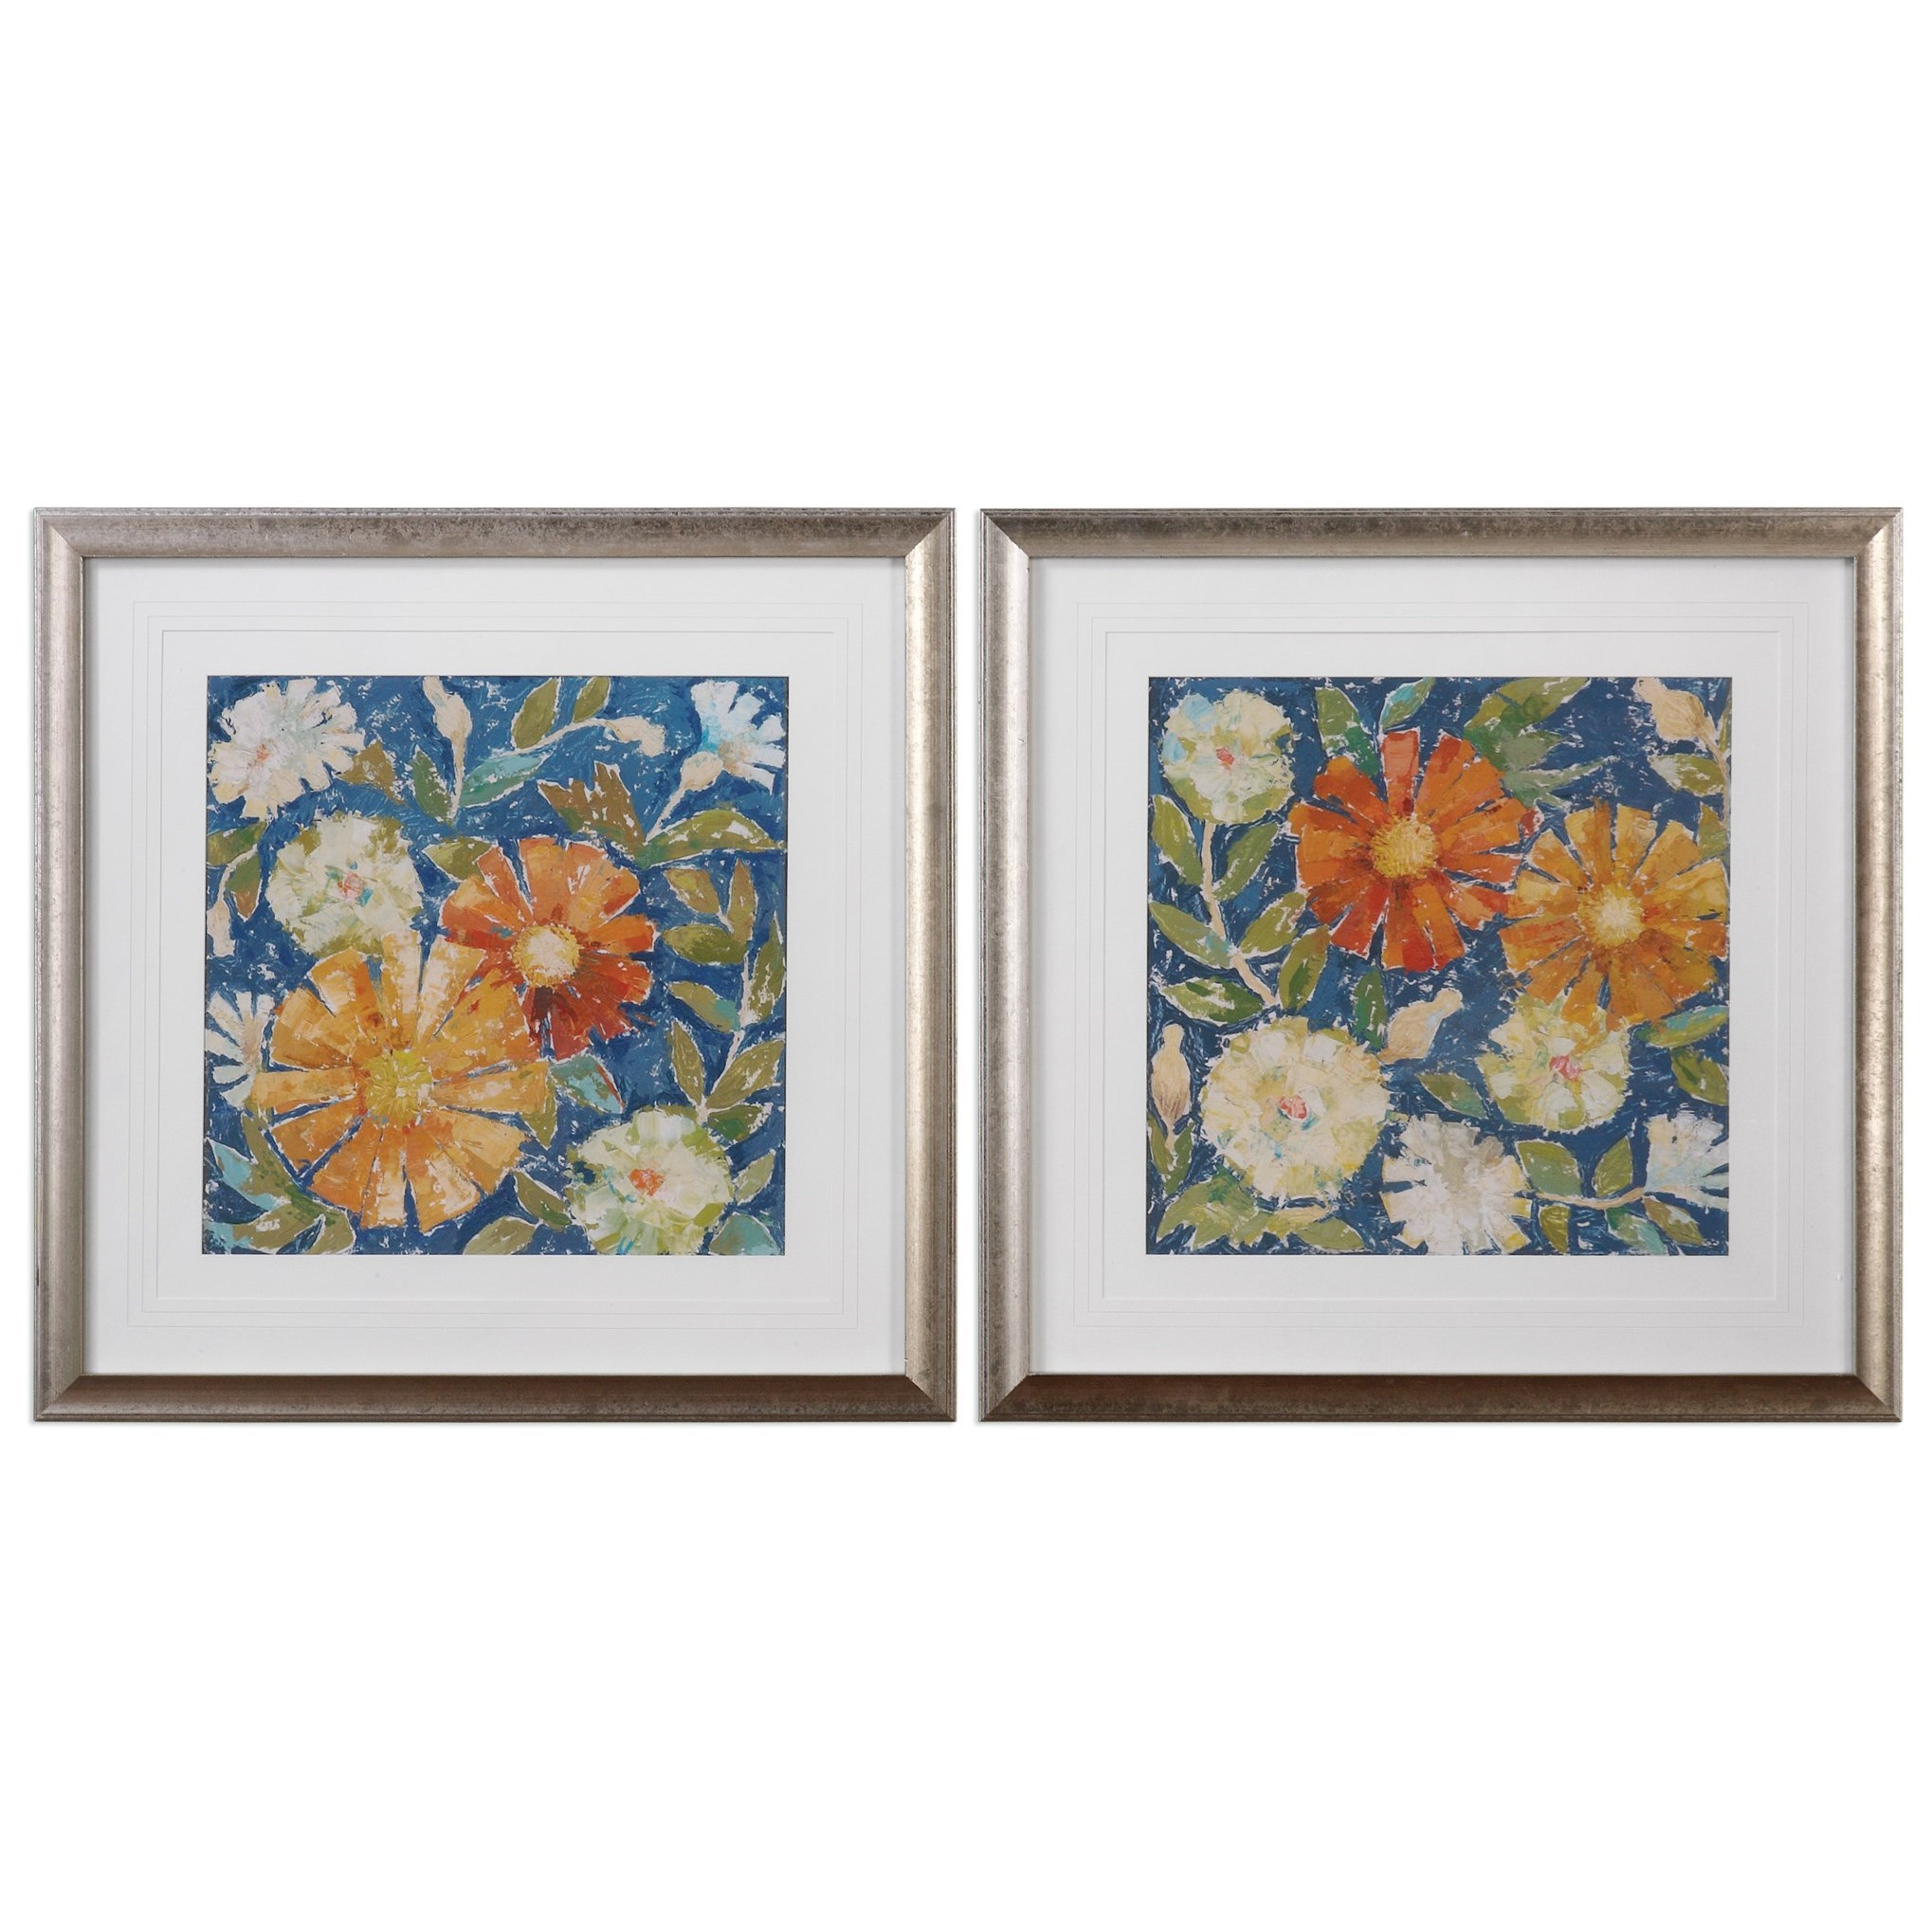 Uttermost Art April Flowers (Set of 2) - Item Number: 33646